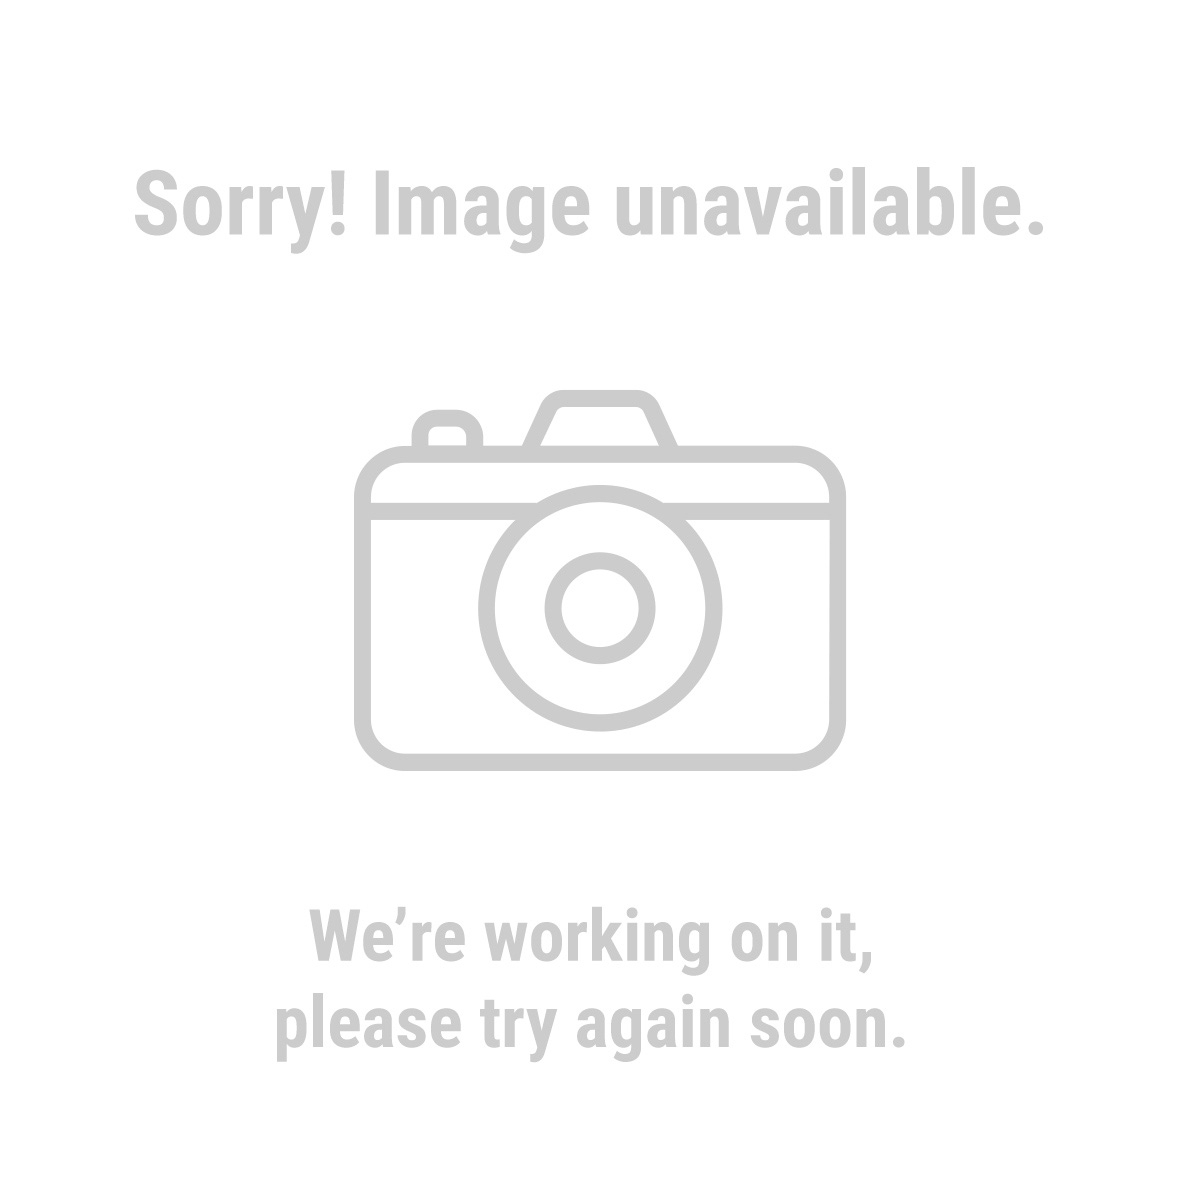 "Chicago Electric Welding 44877 0.035"" E71T-GS Flux Core Welding Wire, 2 Lbs."